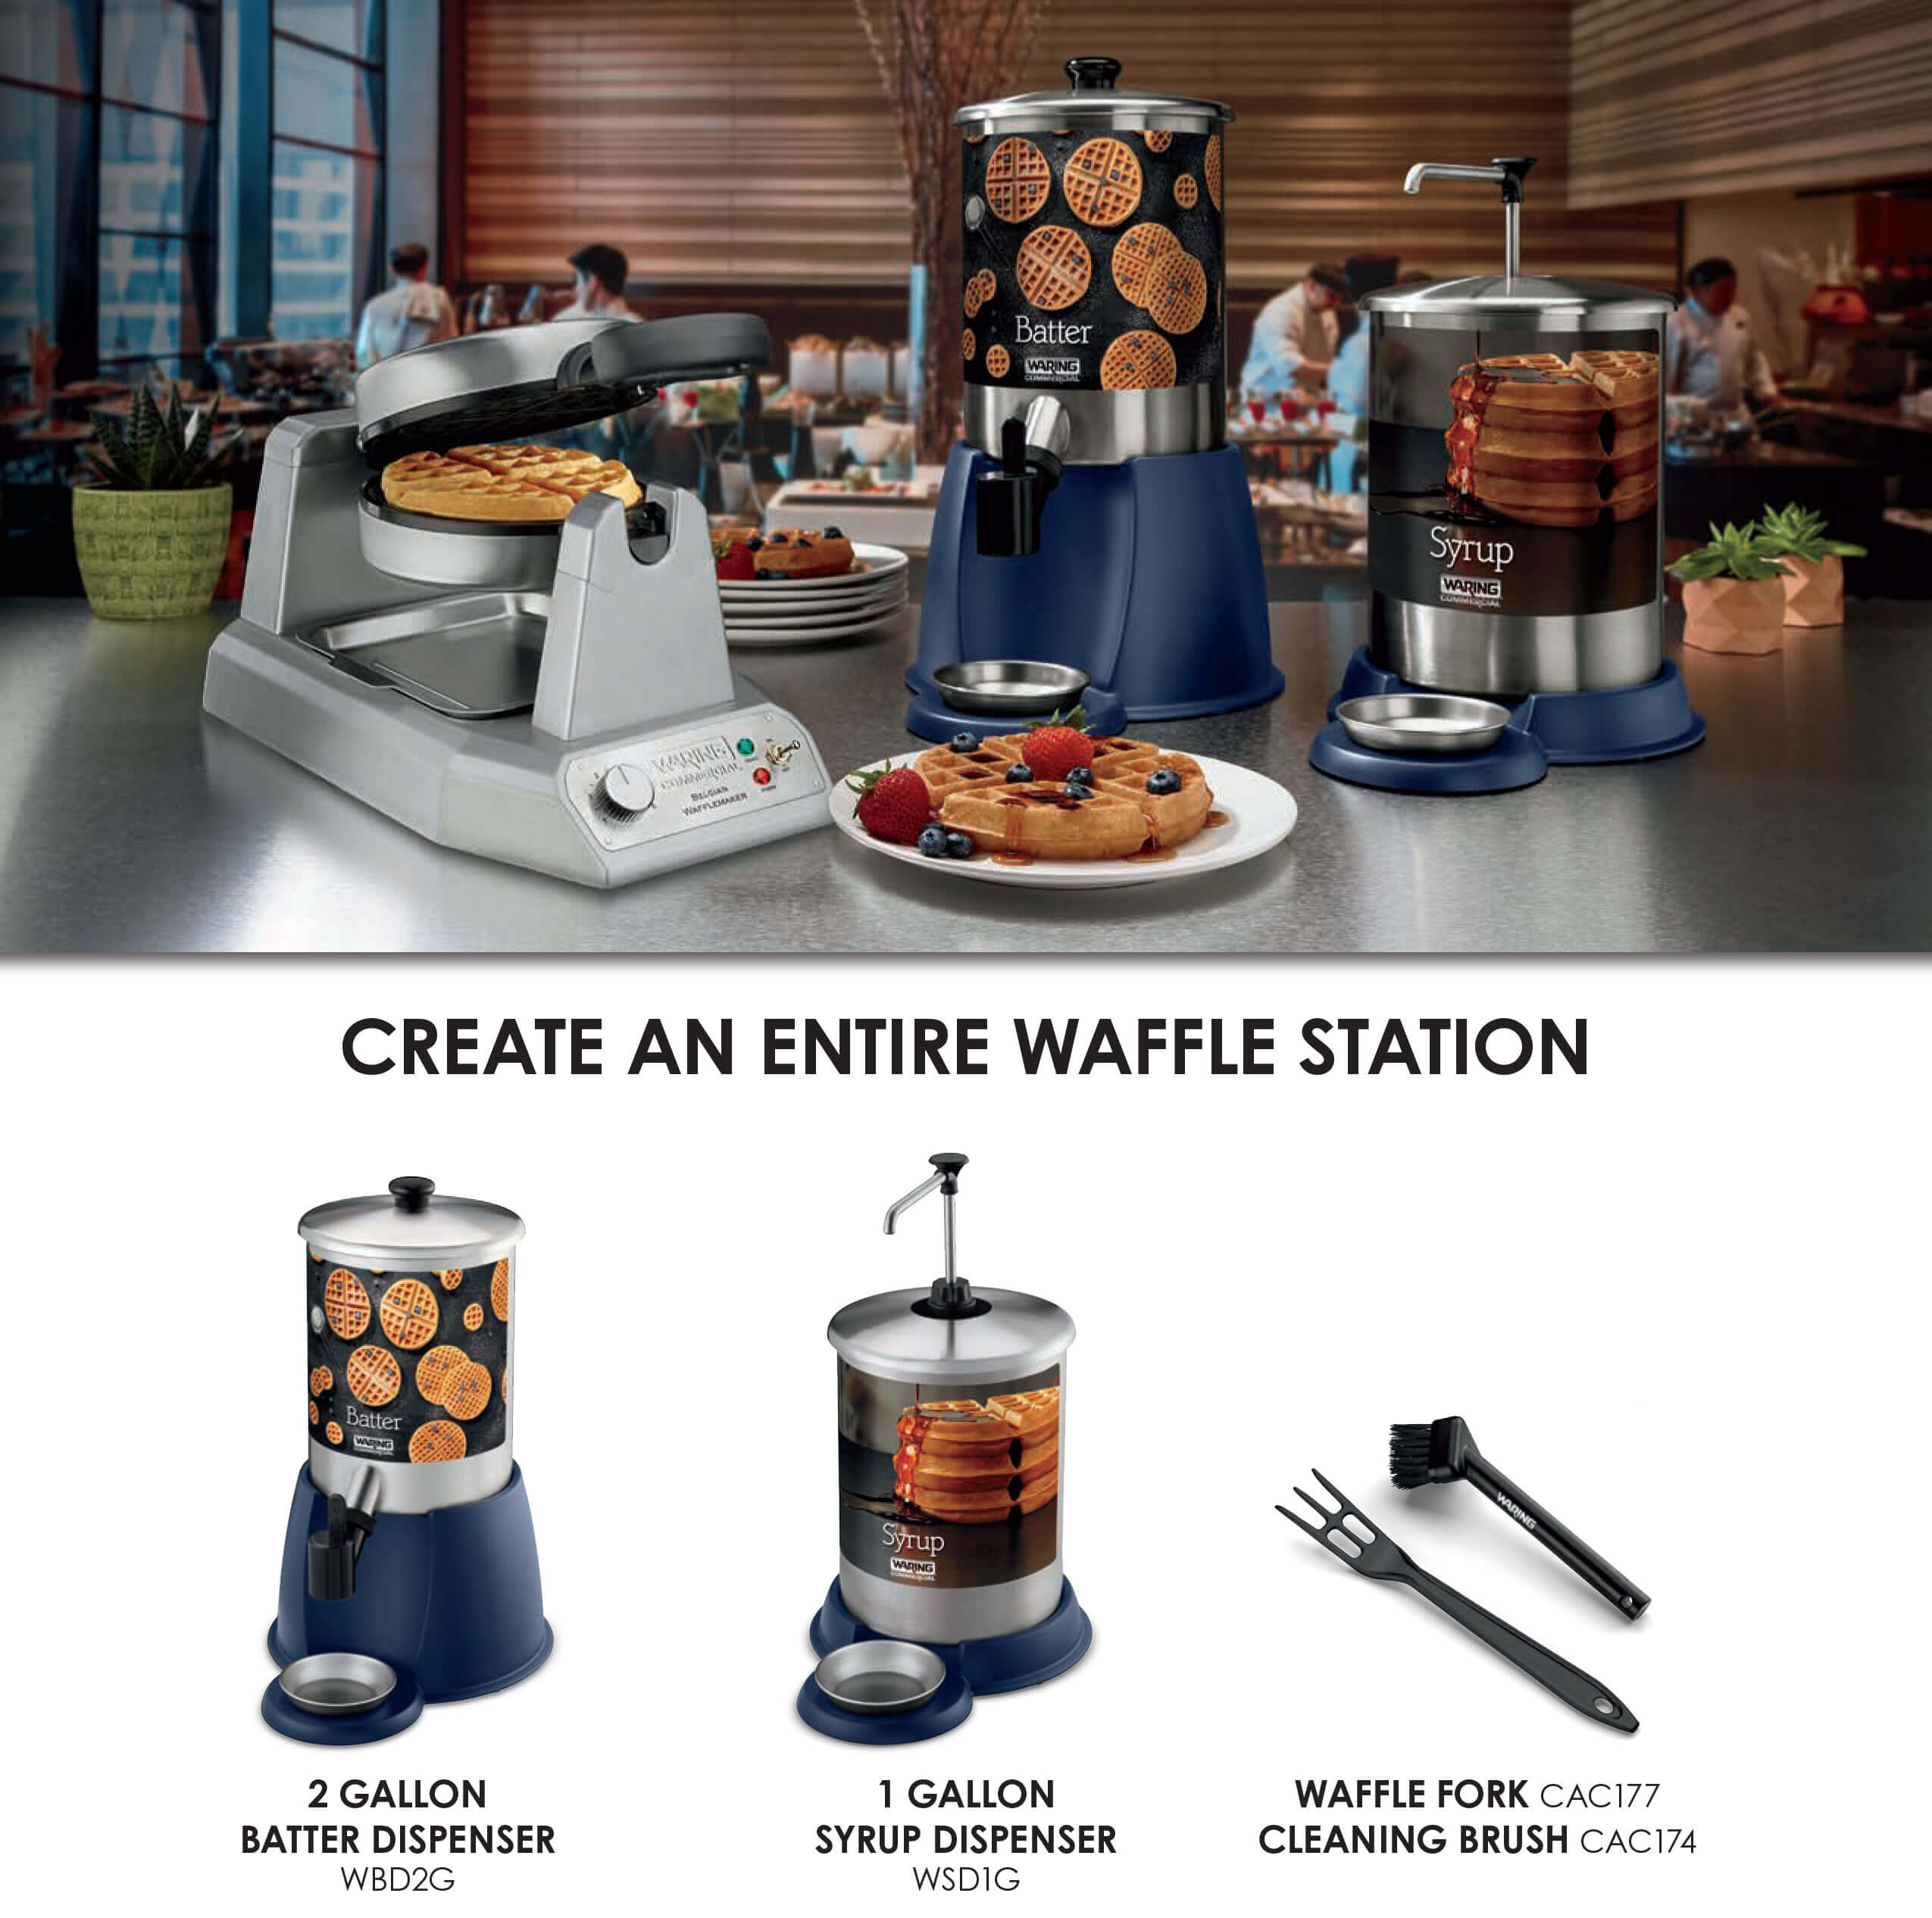 Waring - Create An Entire Waffle Station